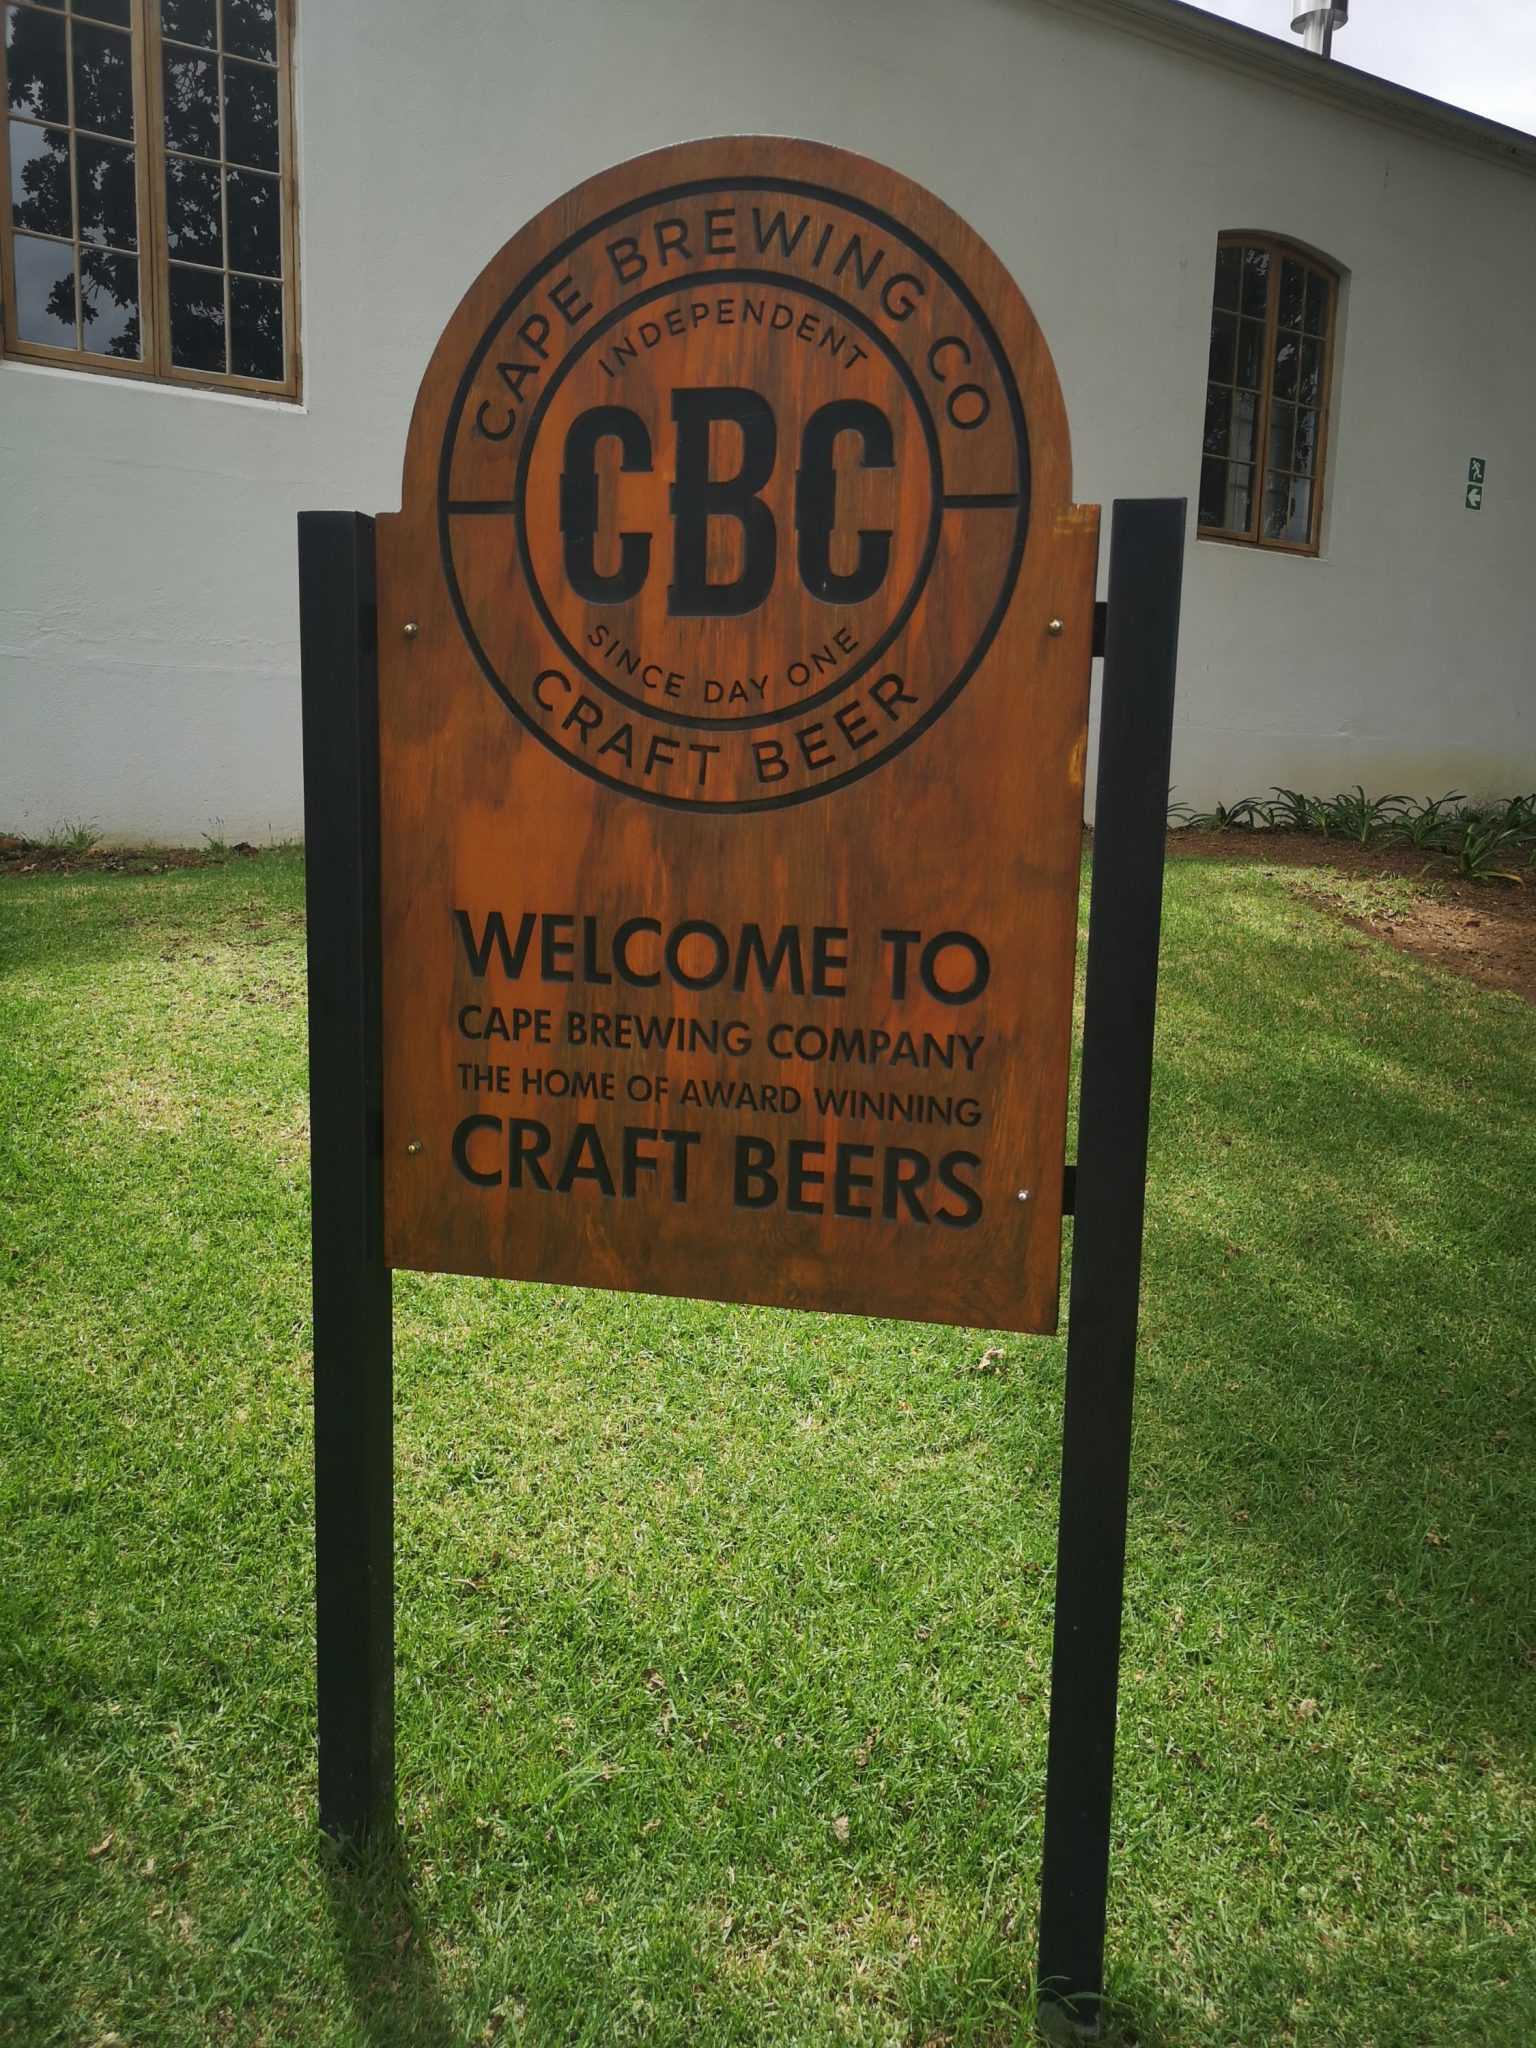 cbc brewery spice route sonia cabano blog eatdrinkcapetown